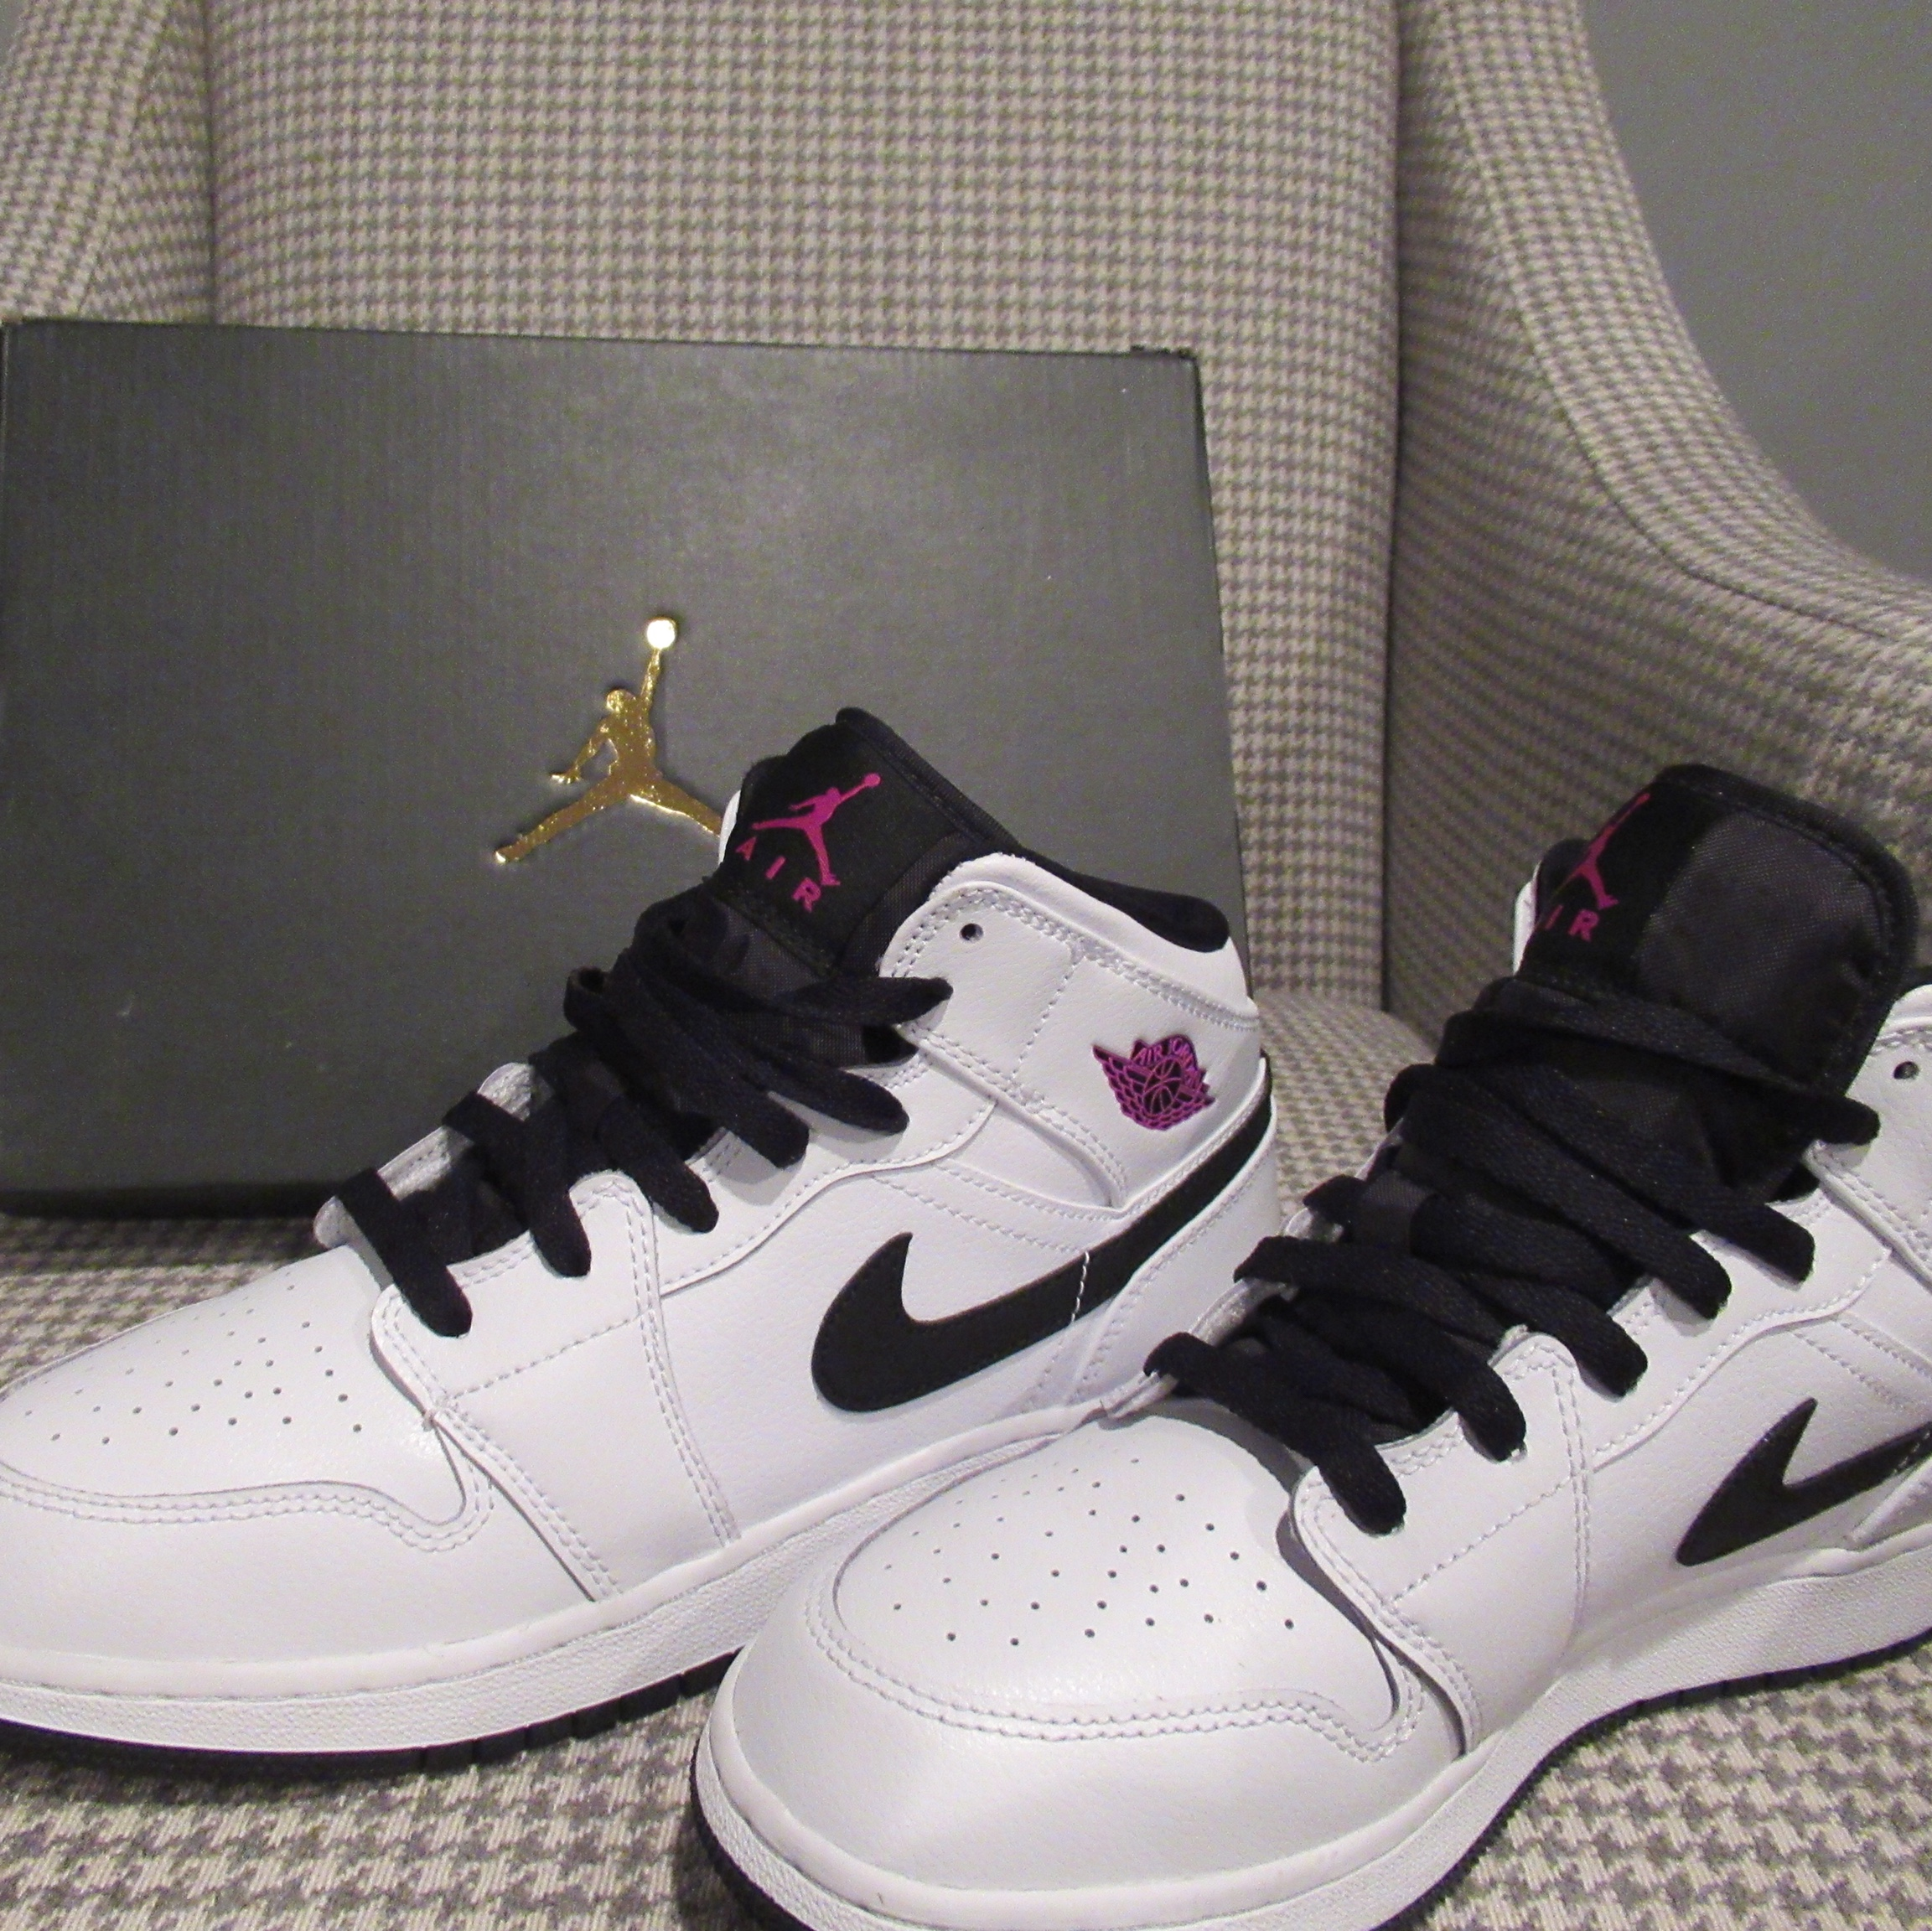 wholesale dealer 33e1d b936d Air Jordan 1 Mid GG White/fuchsia/blast-black 10/10... - Depop